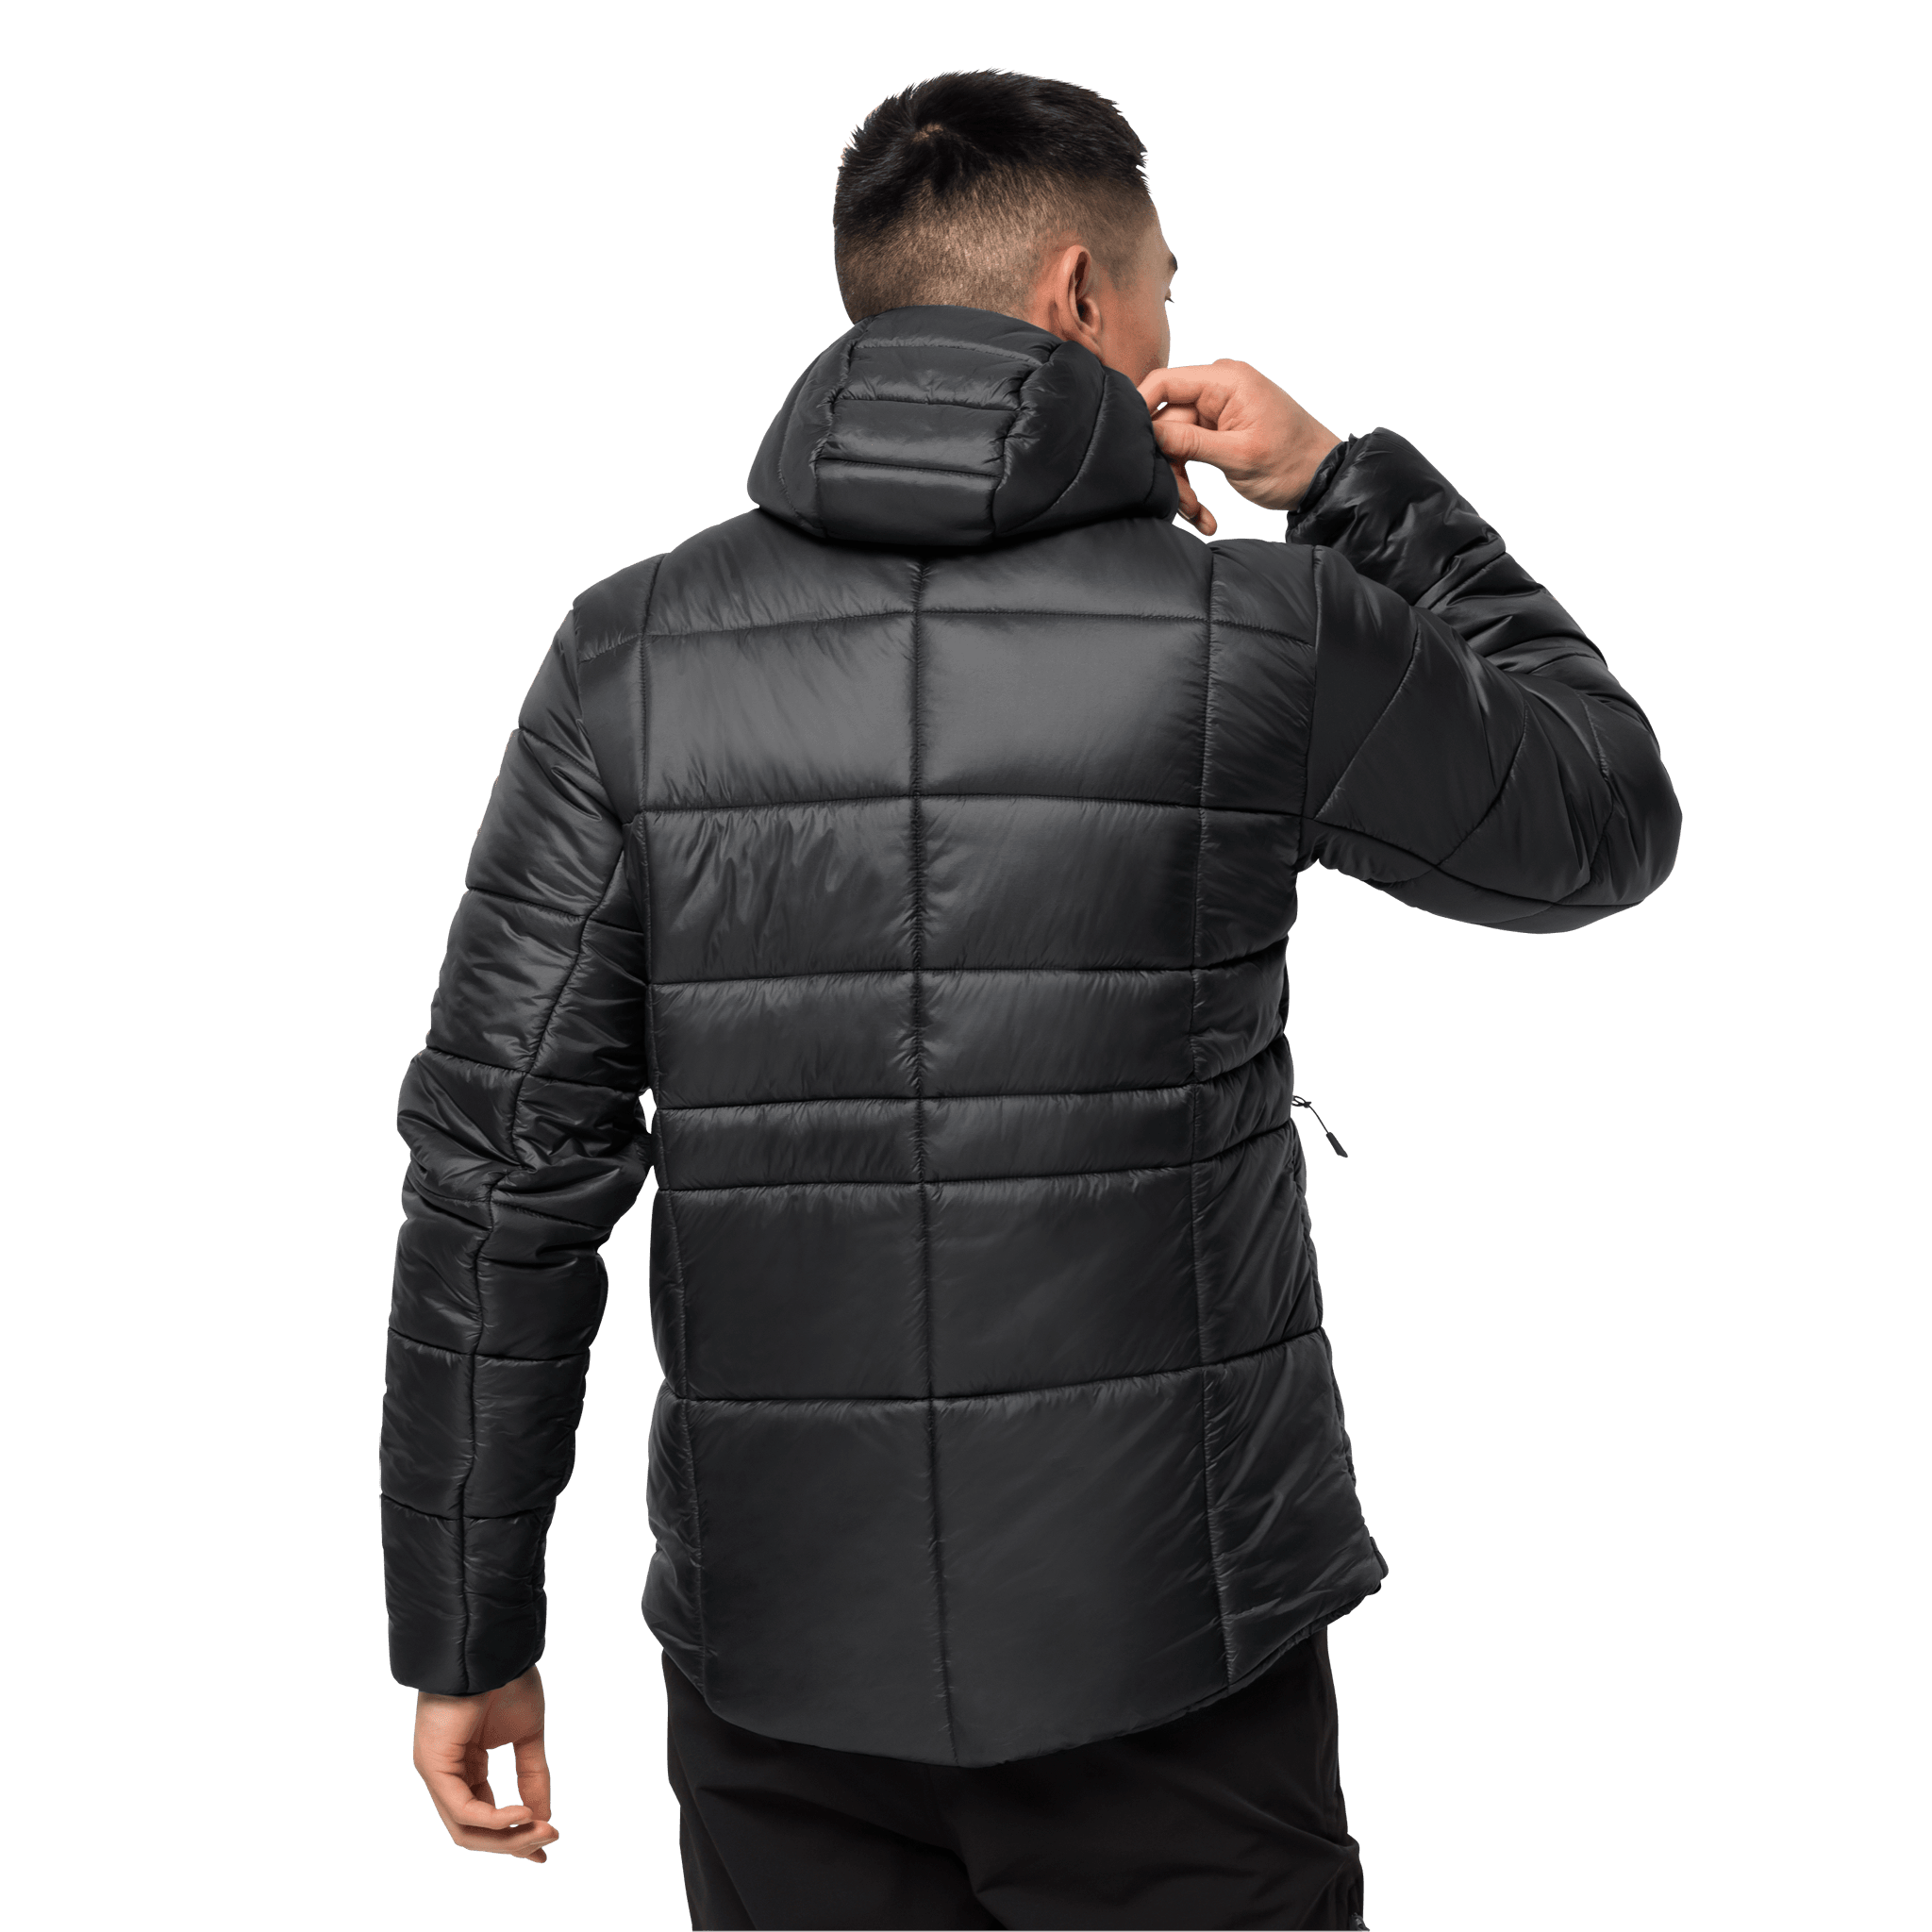 Black Windproof Insulated Jacket Men